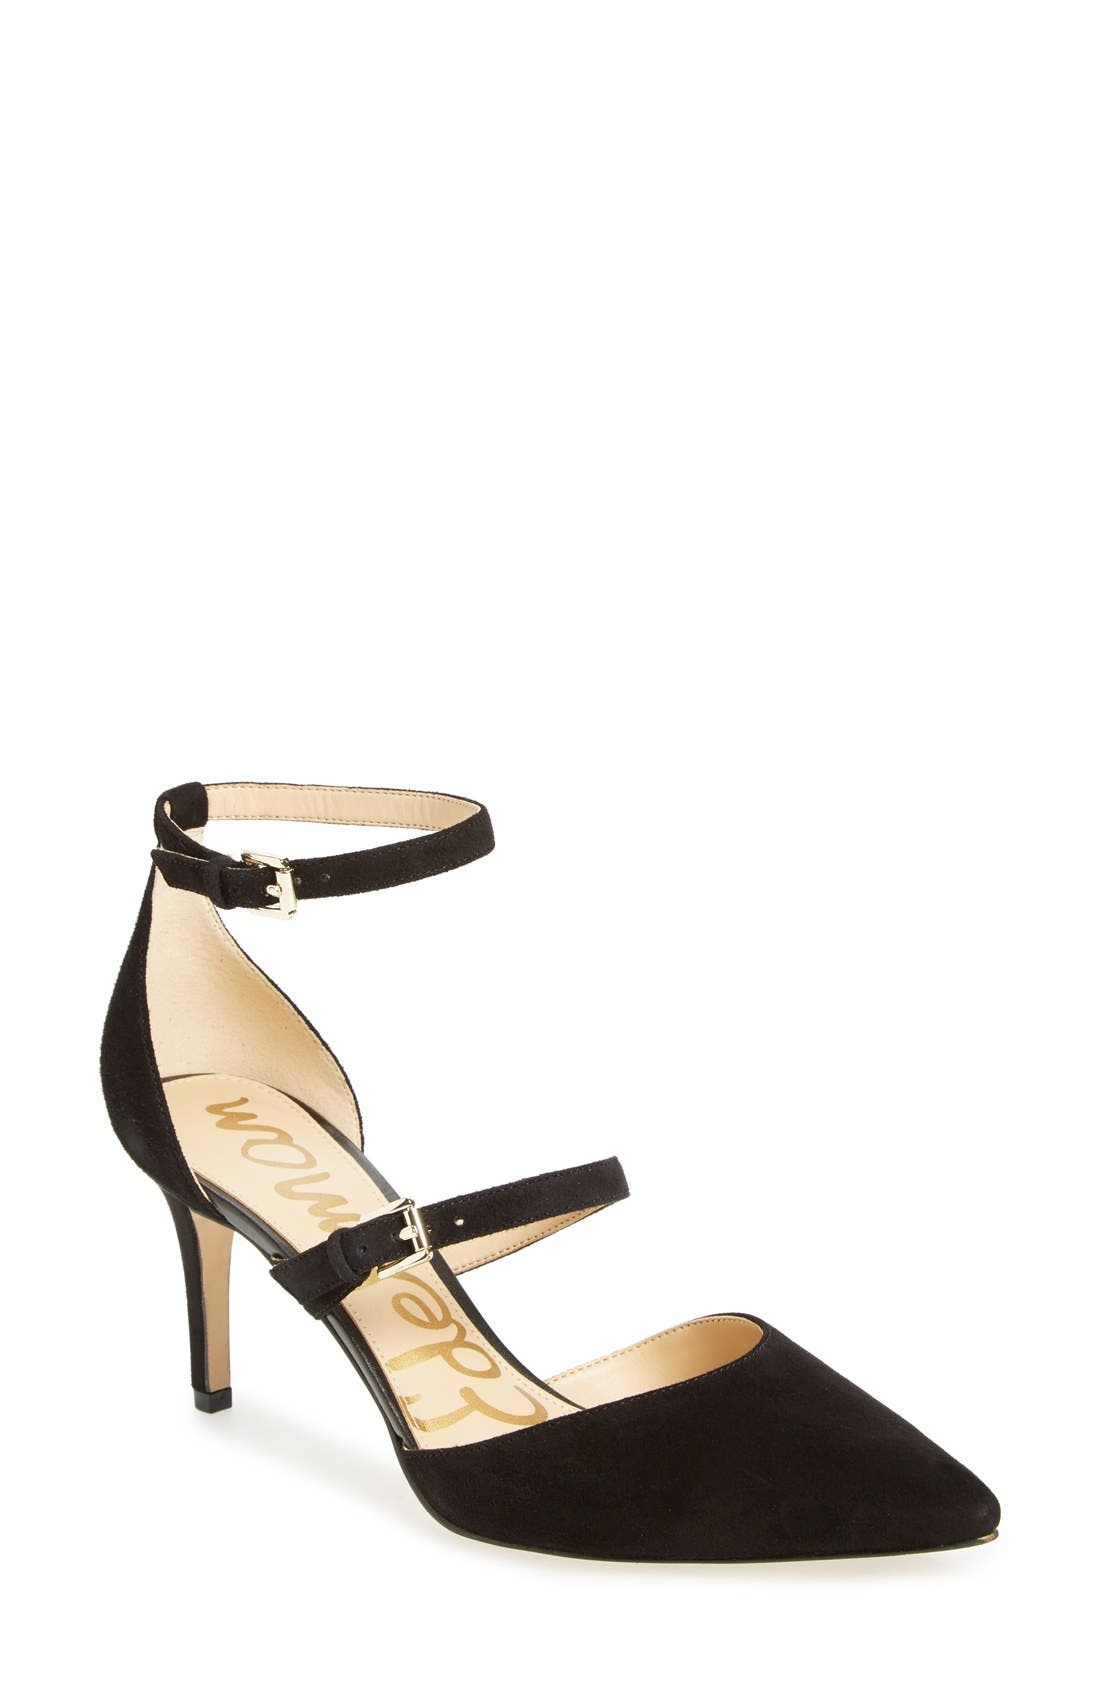 SAM EDELMAN 'Thea' Strappy Pump, Main, color, 001